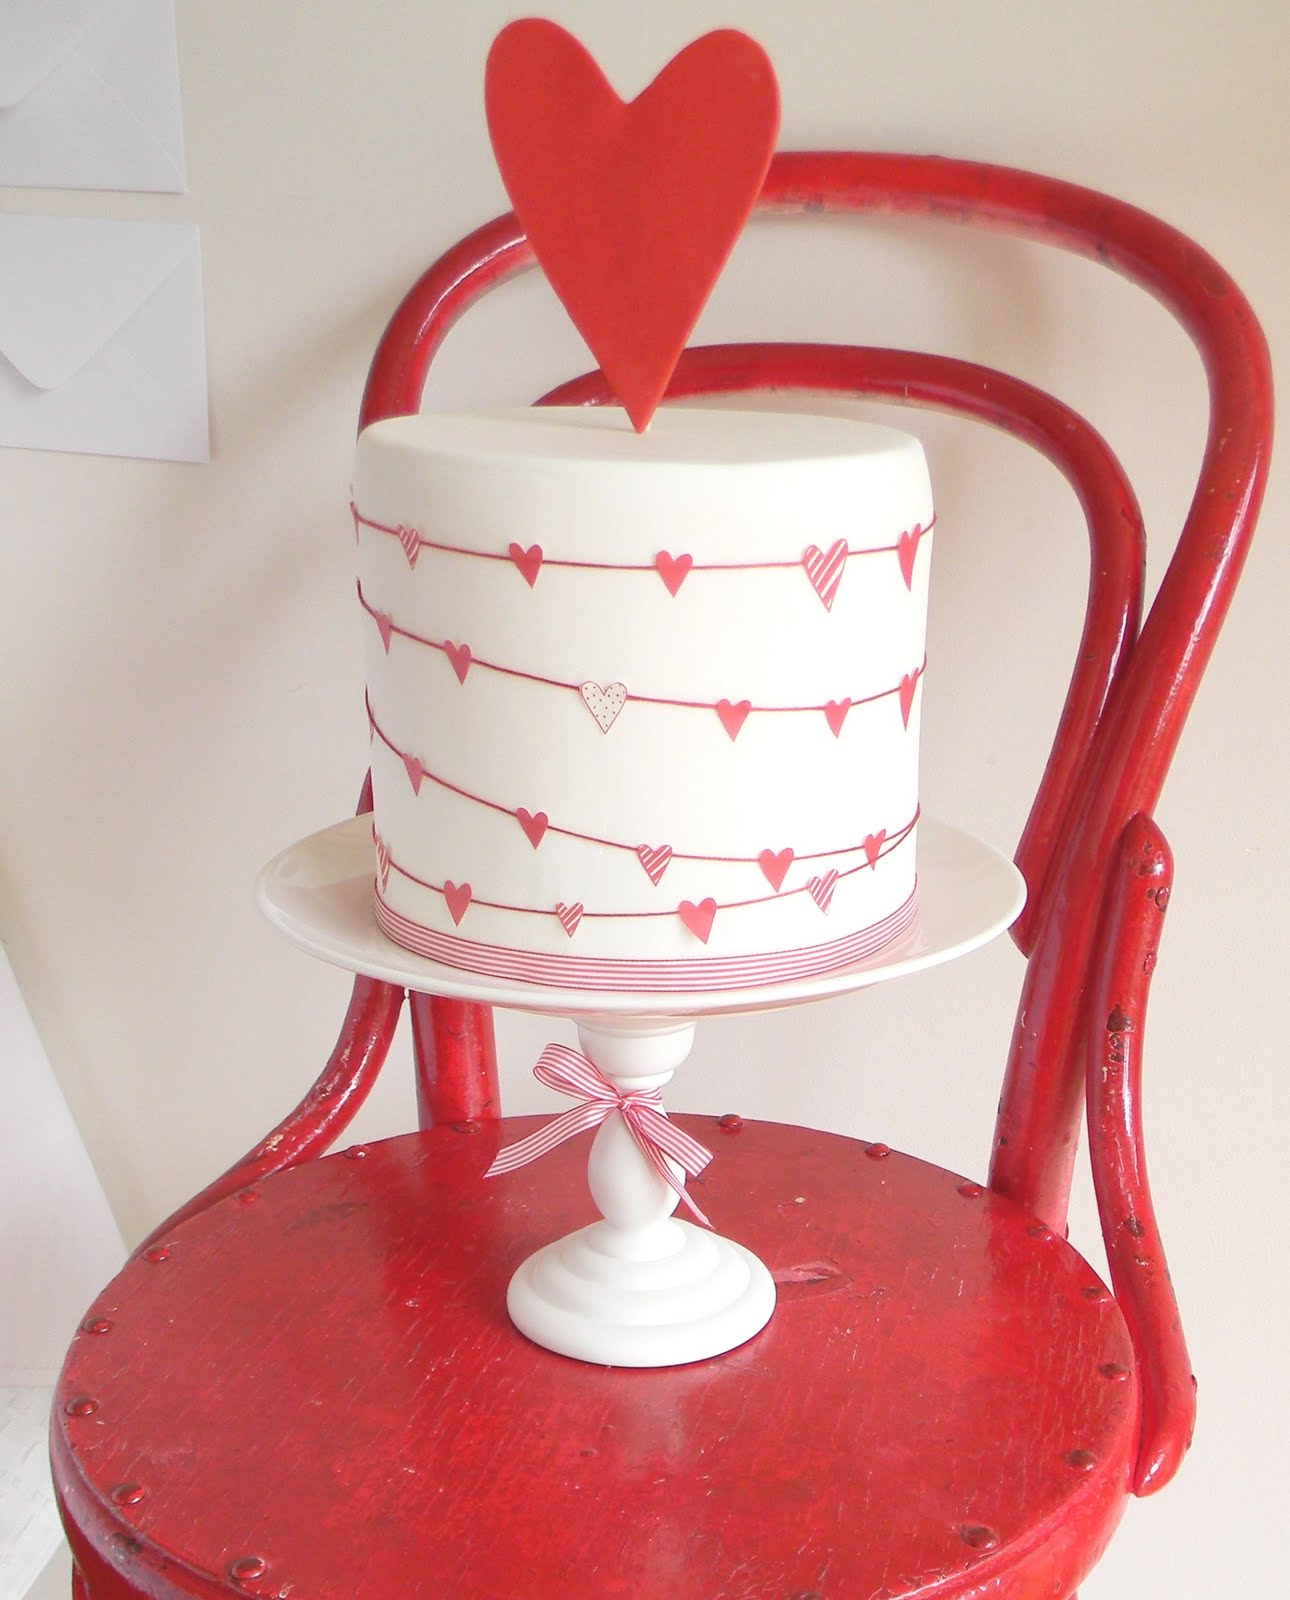 Best Valentine Cake Images : Top 8 Favorite Valentine s Day Cake Projects - Jessica ...